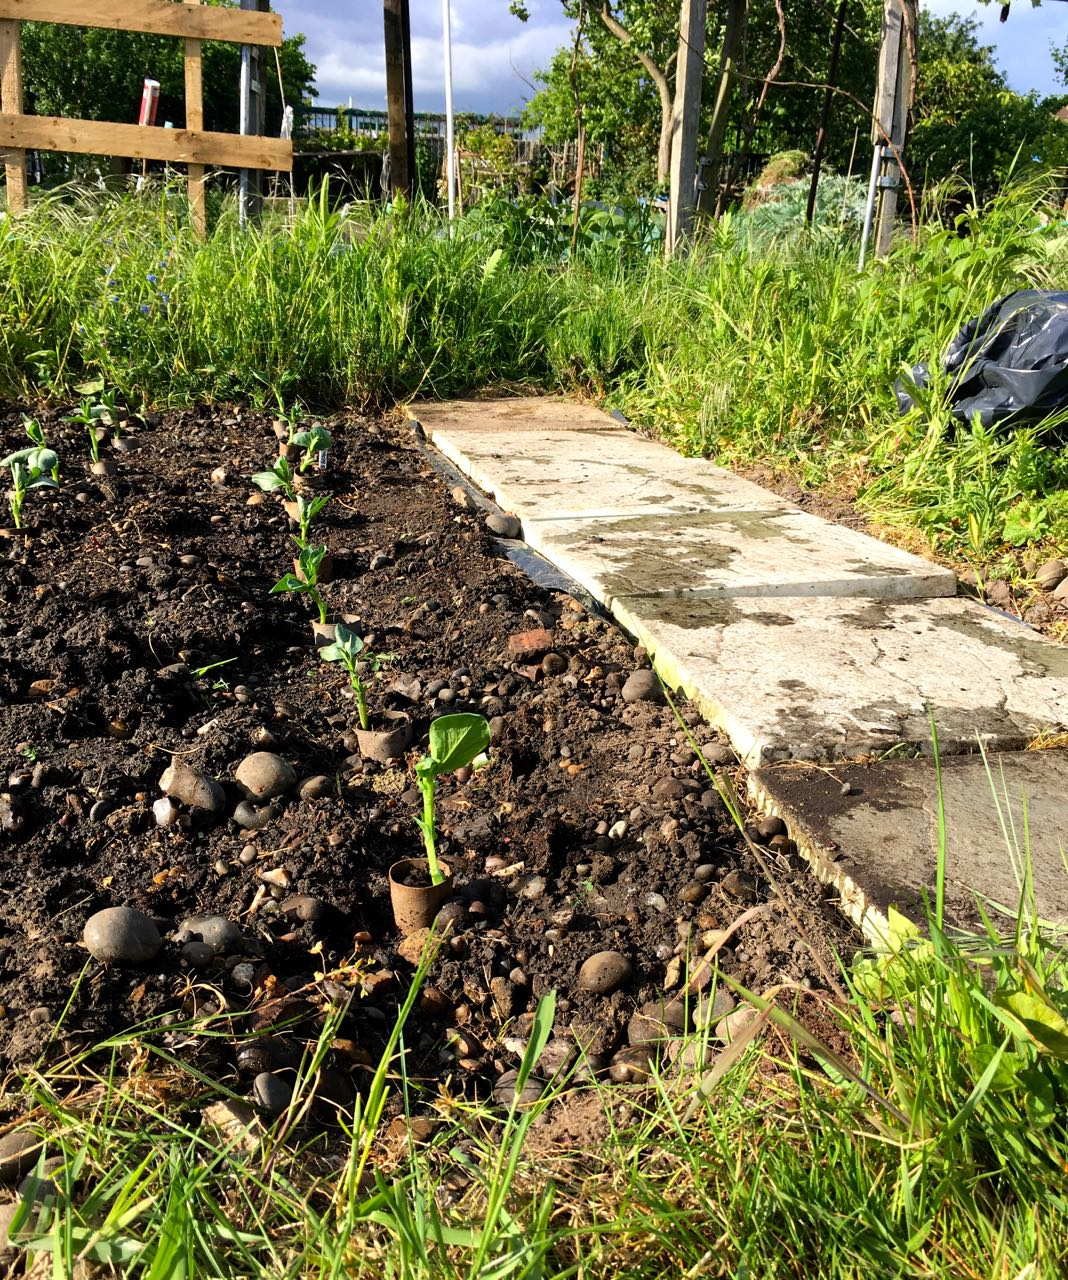 BROAD BEANS PLANTED OUT ALONGSIDE A NEWLY WEEDED PATH